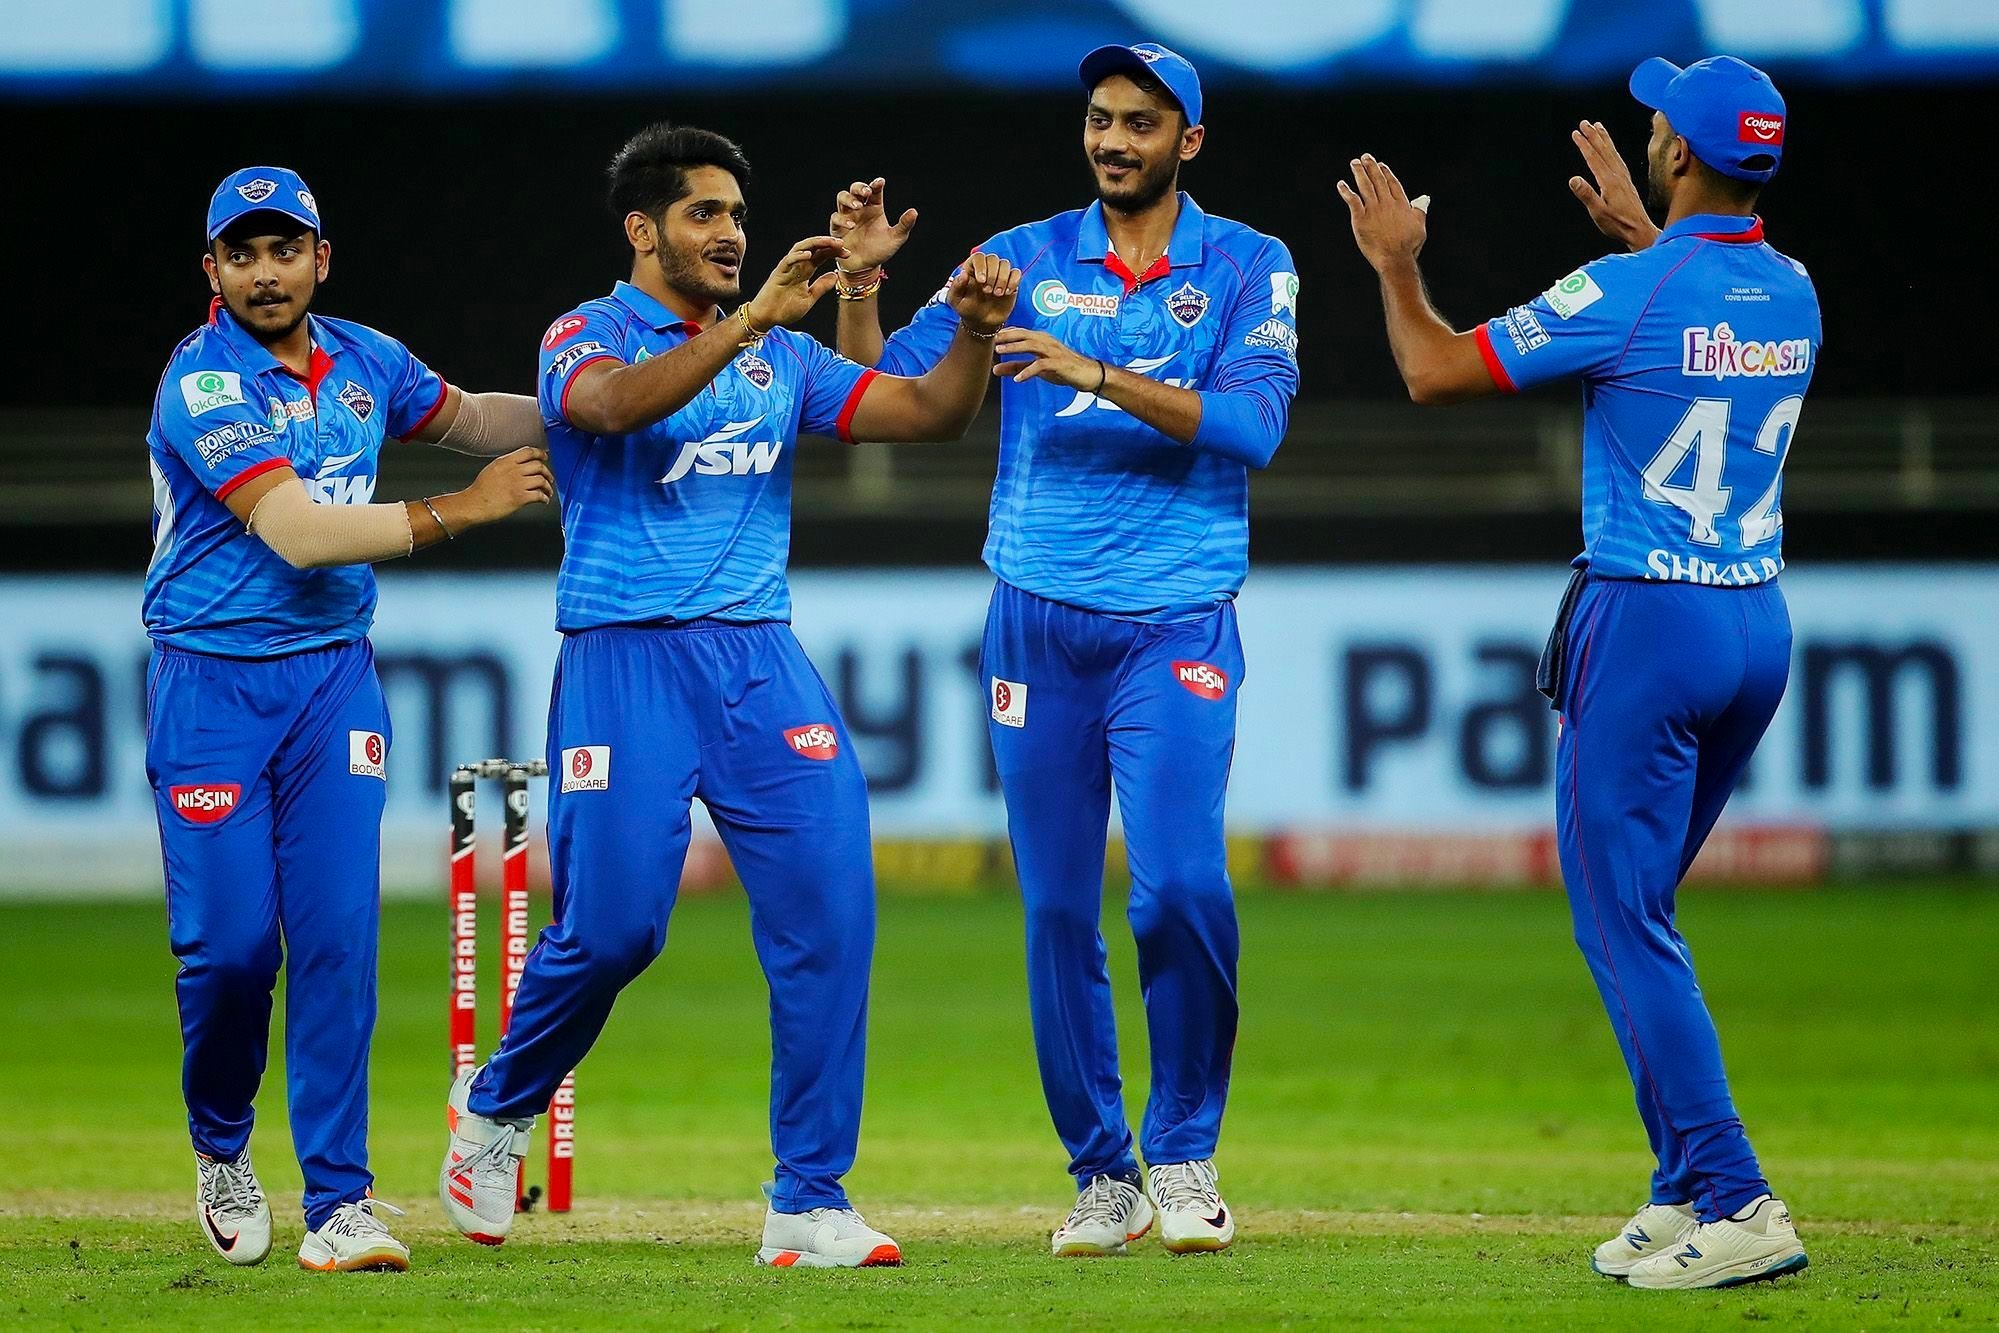 Delhi capital won by 13 runs over Rajasthan royals